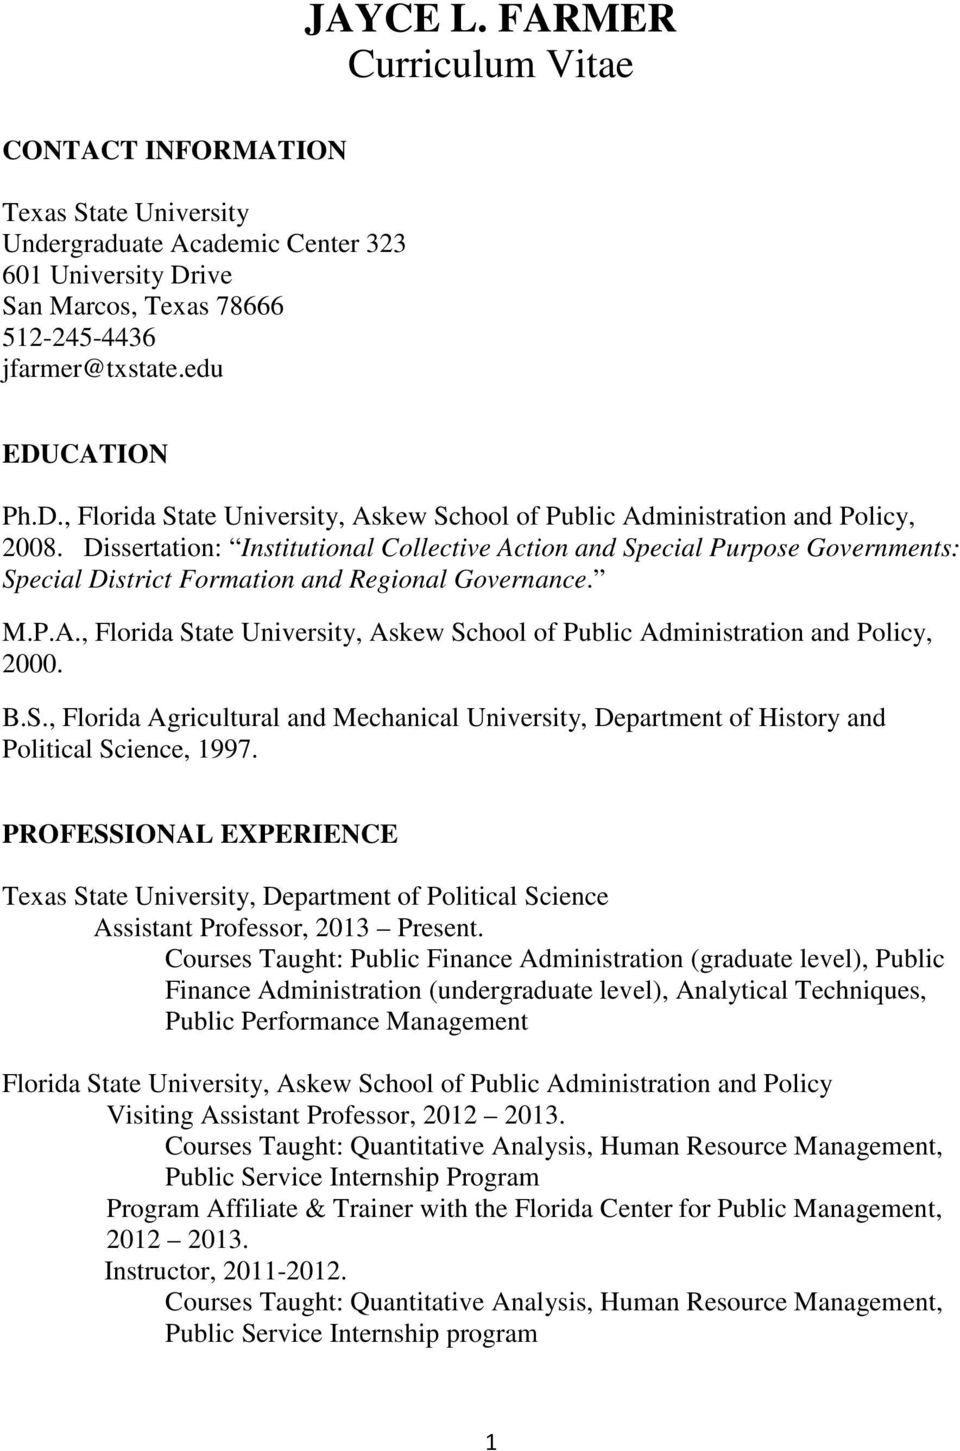 Dissertation: Institutional Collective Action and Special Purpose Governments: Special District Formation and Regional Governance. M.P.A., Florida State University, Askew School of Public Administration and Policy, 2000.